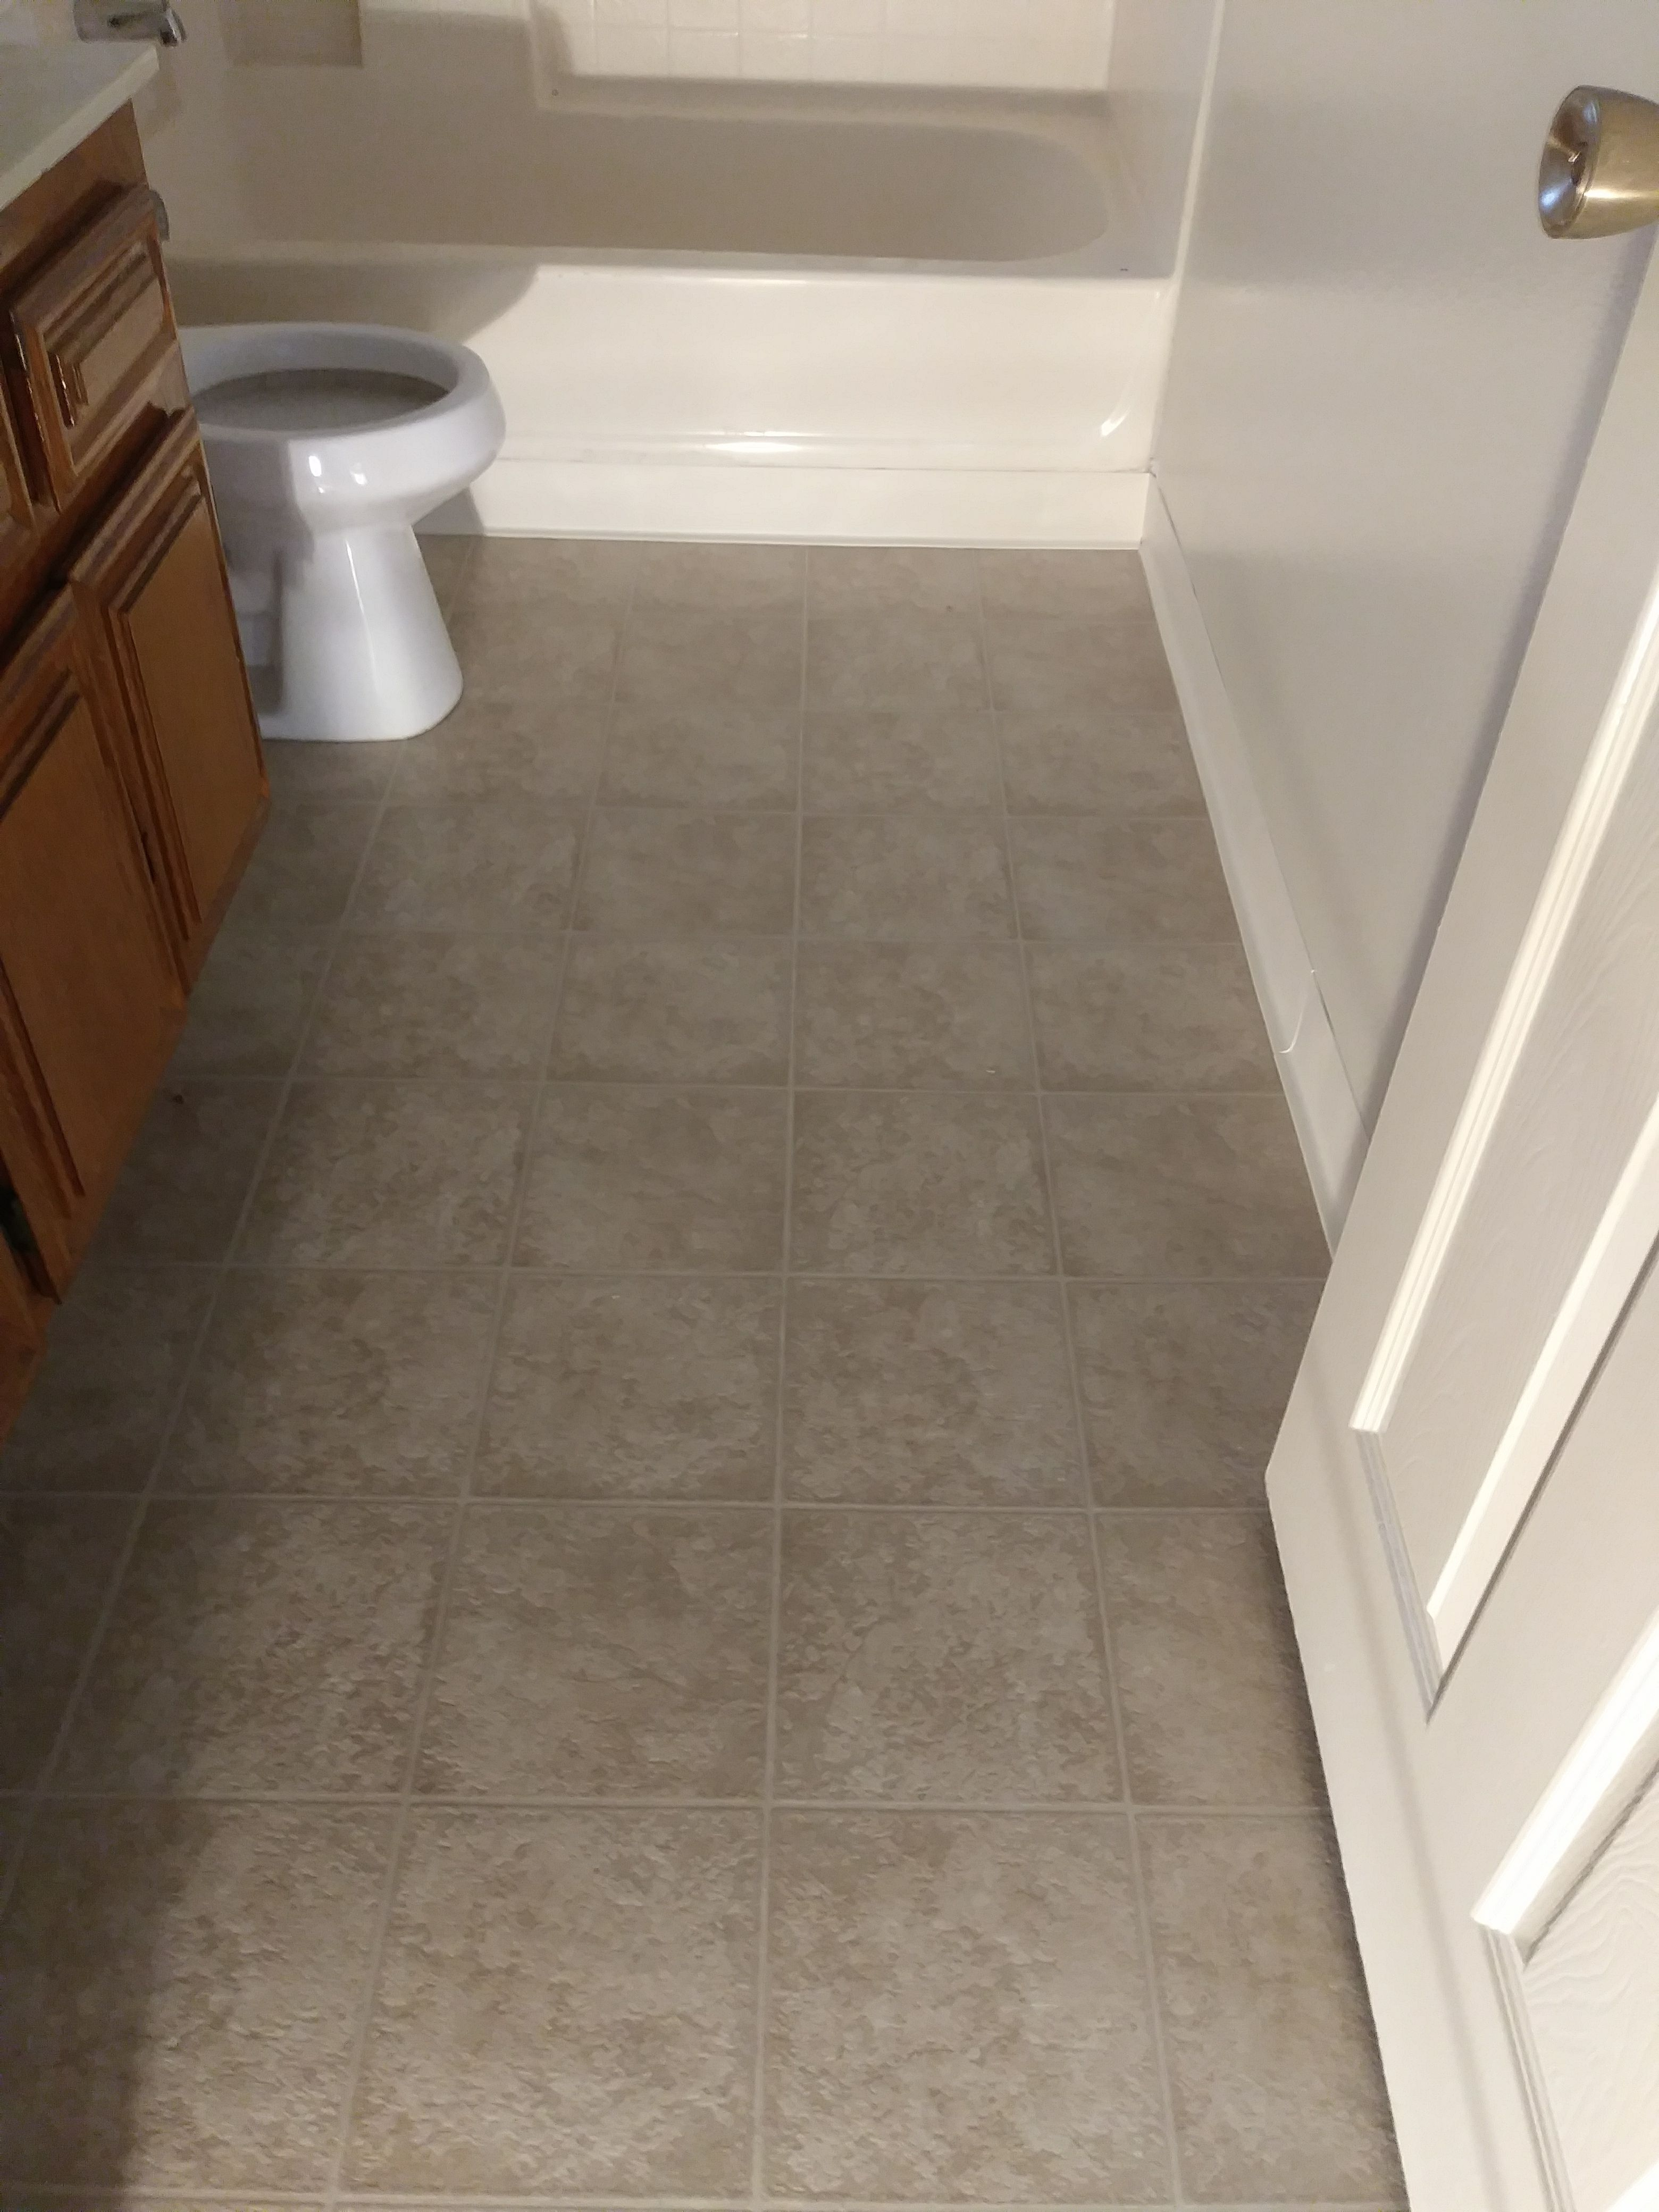 In This Bathroom We Installed Sheet Vinyl Flooring Call Us For A Free Quote Flooring Carpet Installation Bathroom Vinyl Flooring Vinyl Flooring Bathroom